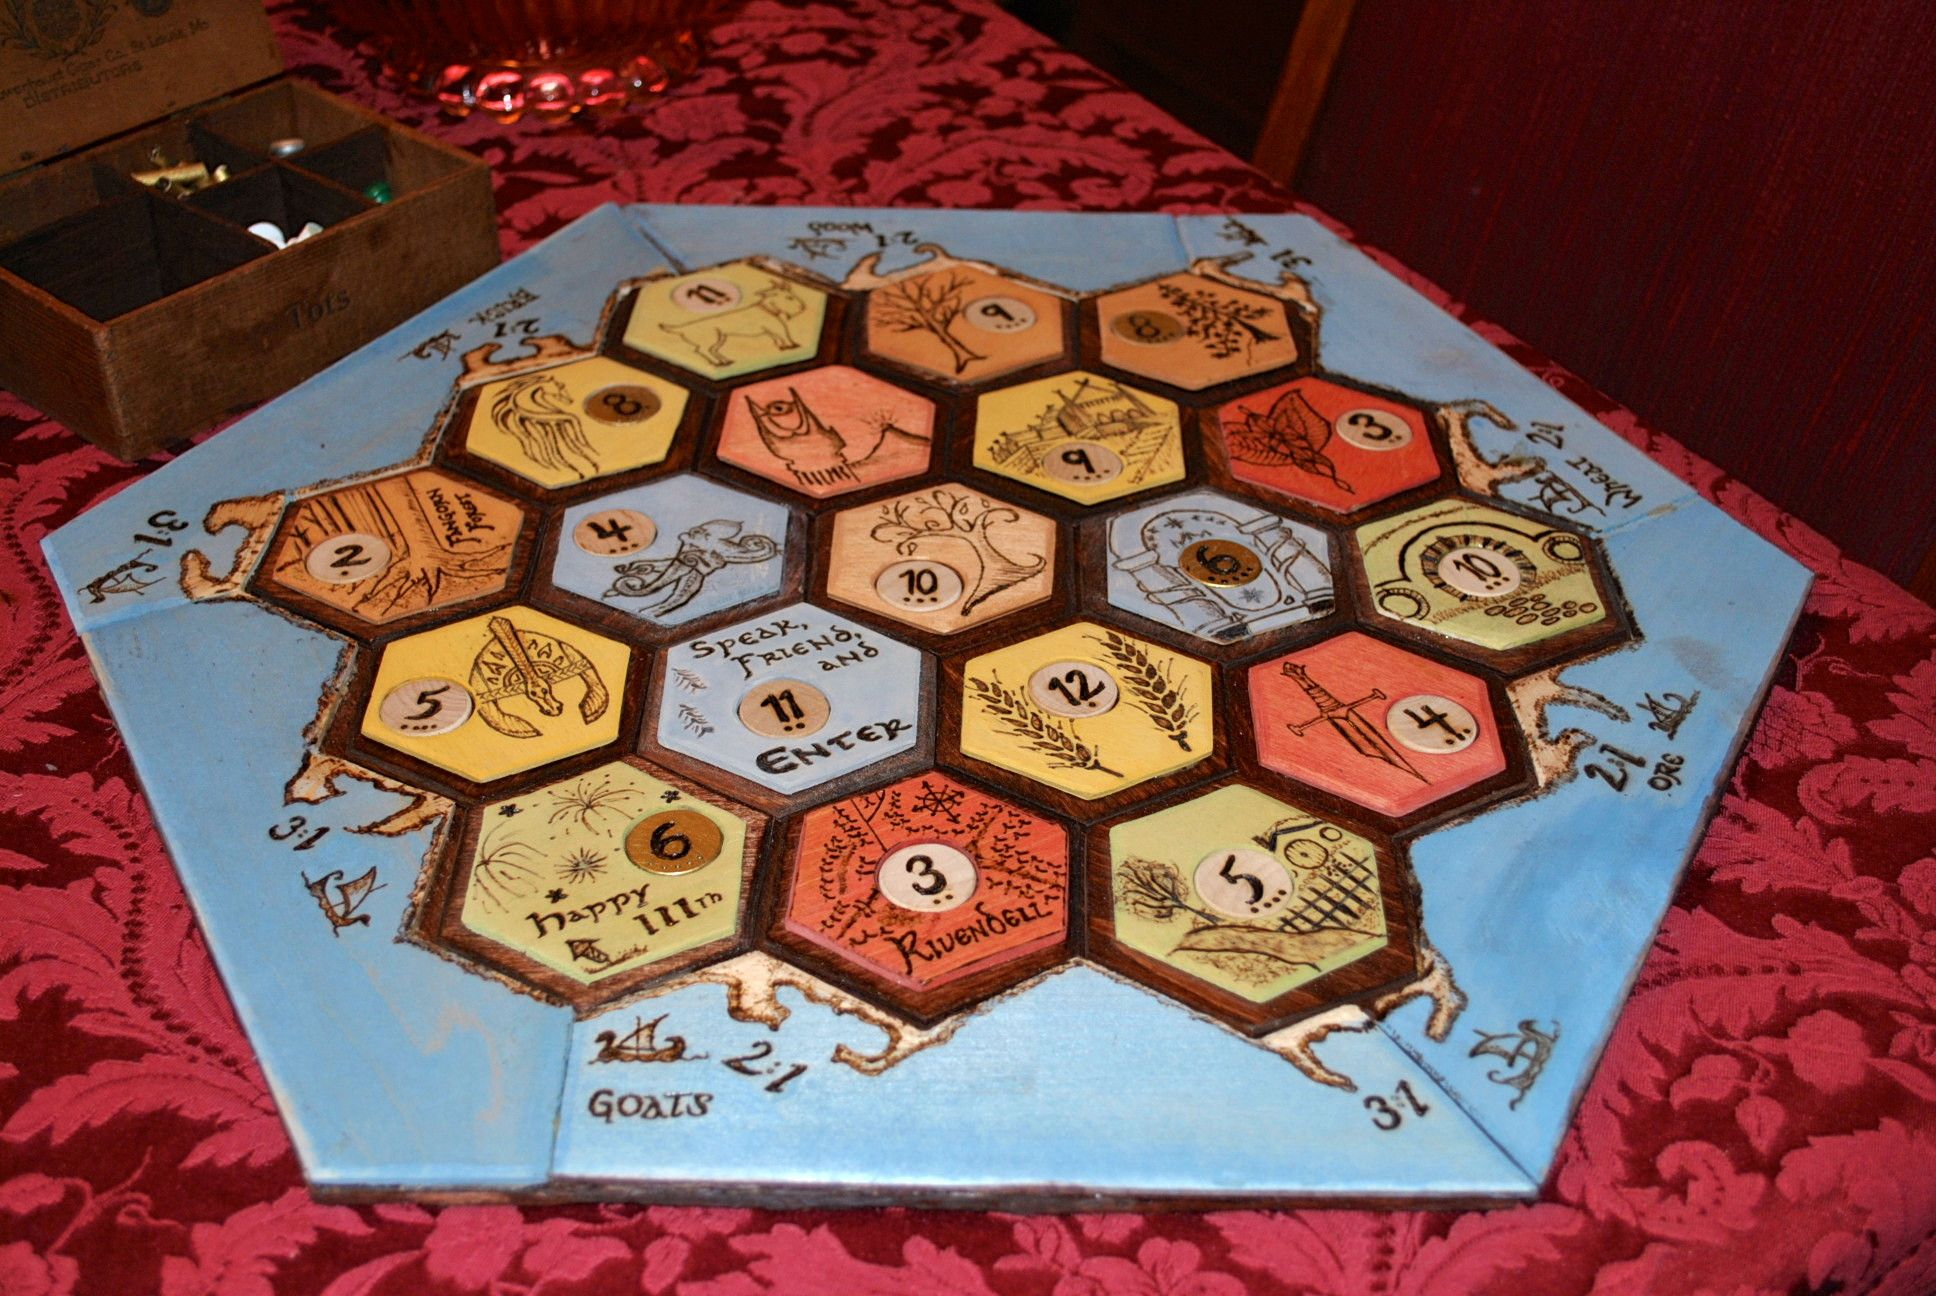 Handmade Lord Of The Rings And Or Tolkien Themed Settlers Of Catan This Is Happening Catan Lord Of The Rings Miniature Crafts